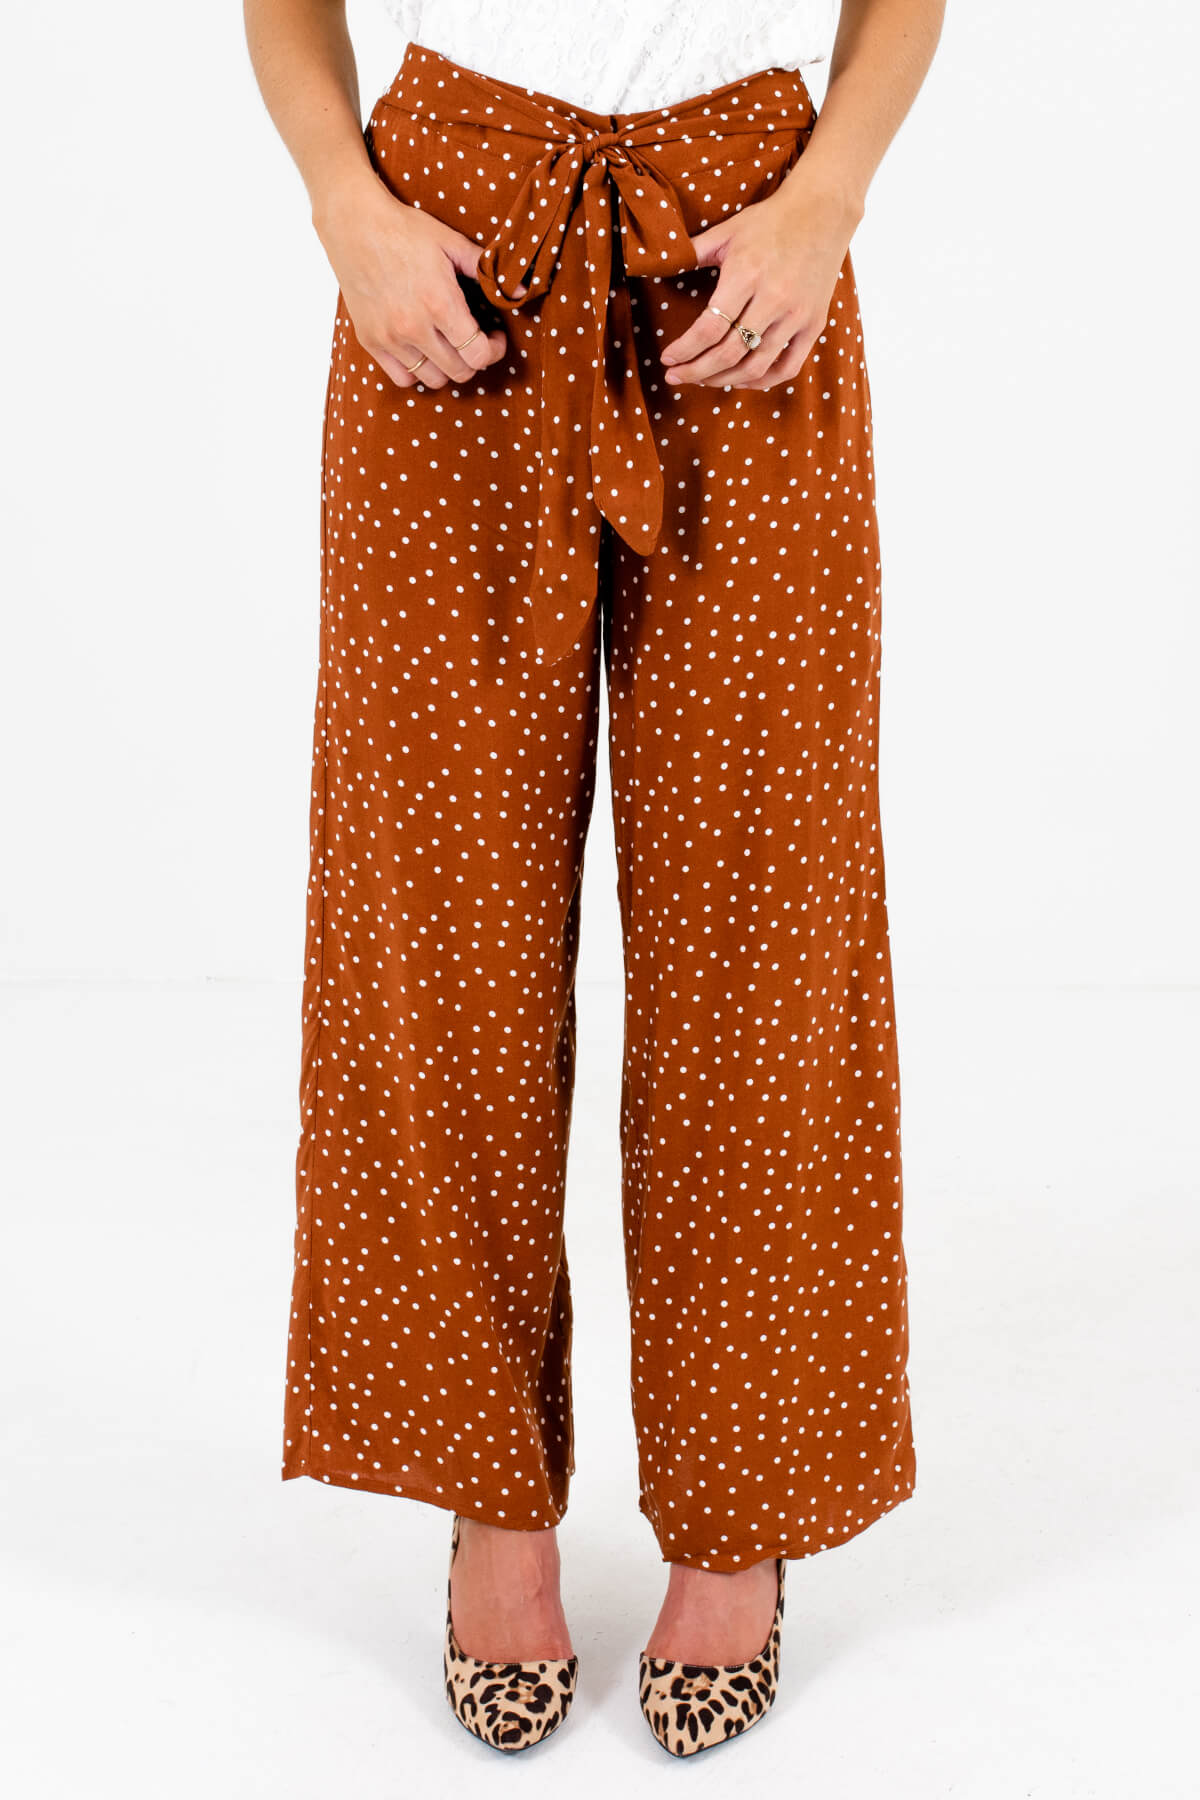 Rust Orange White Polka Dot Patterned Boutique Pants for Women